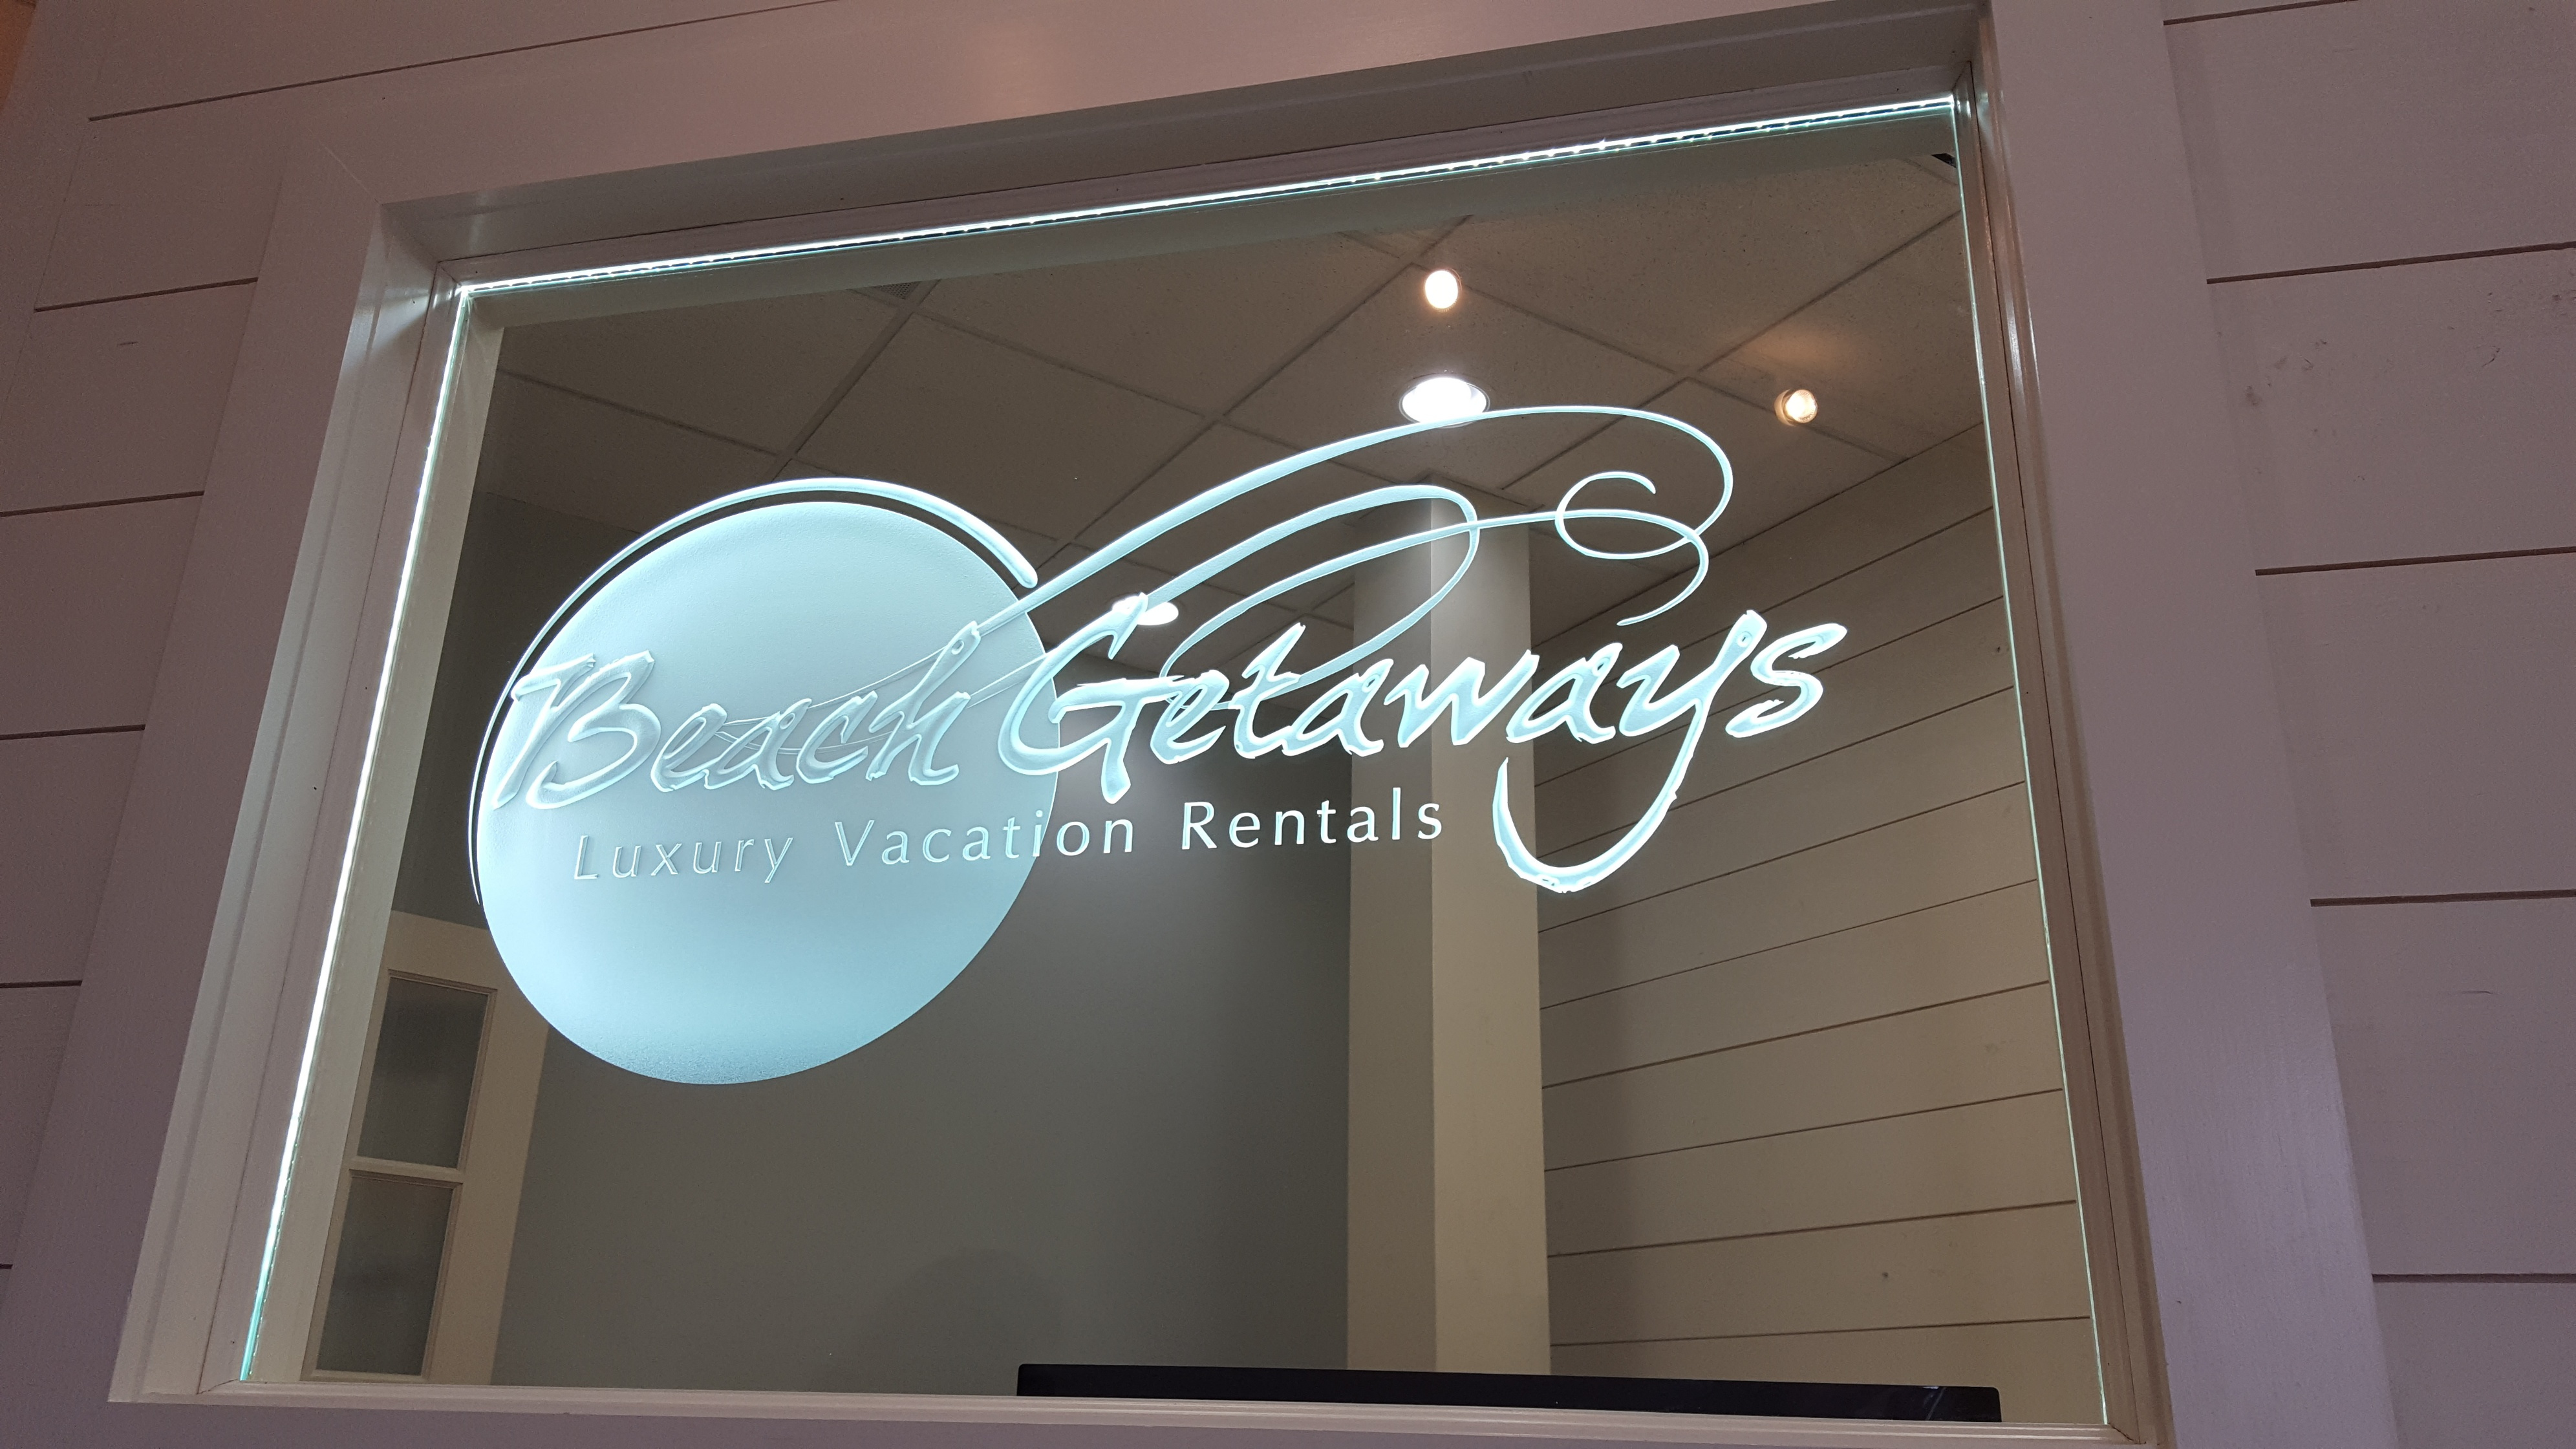 Beach Getaways  Luxury Vacation Rentals logo sandblasted on glass by Glass Graphics